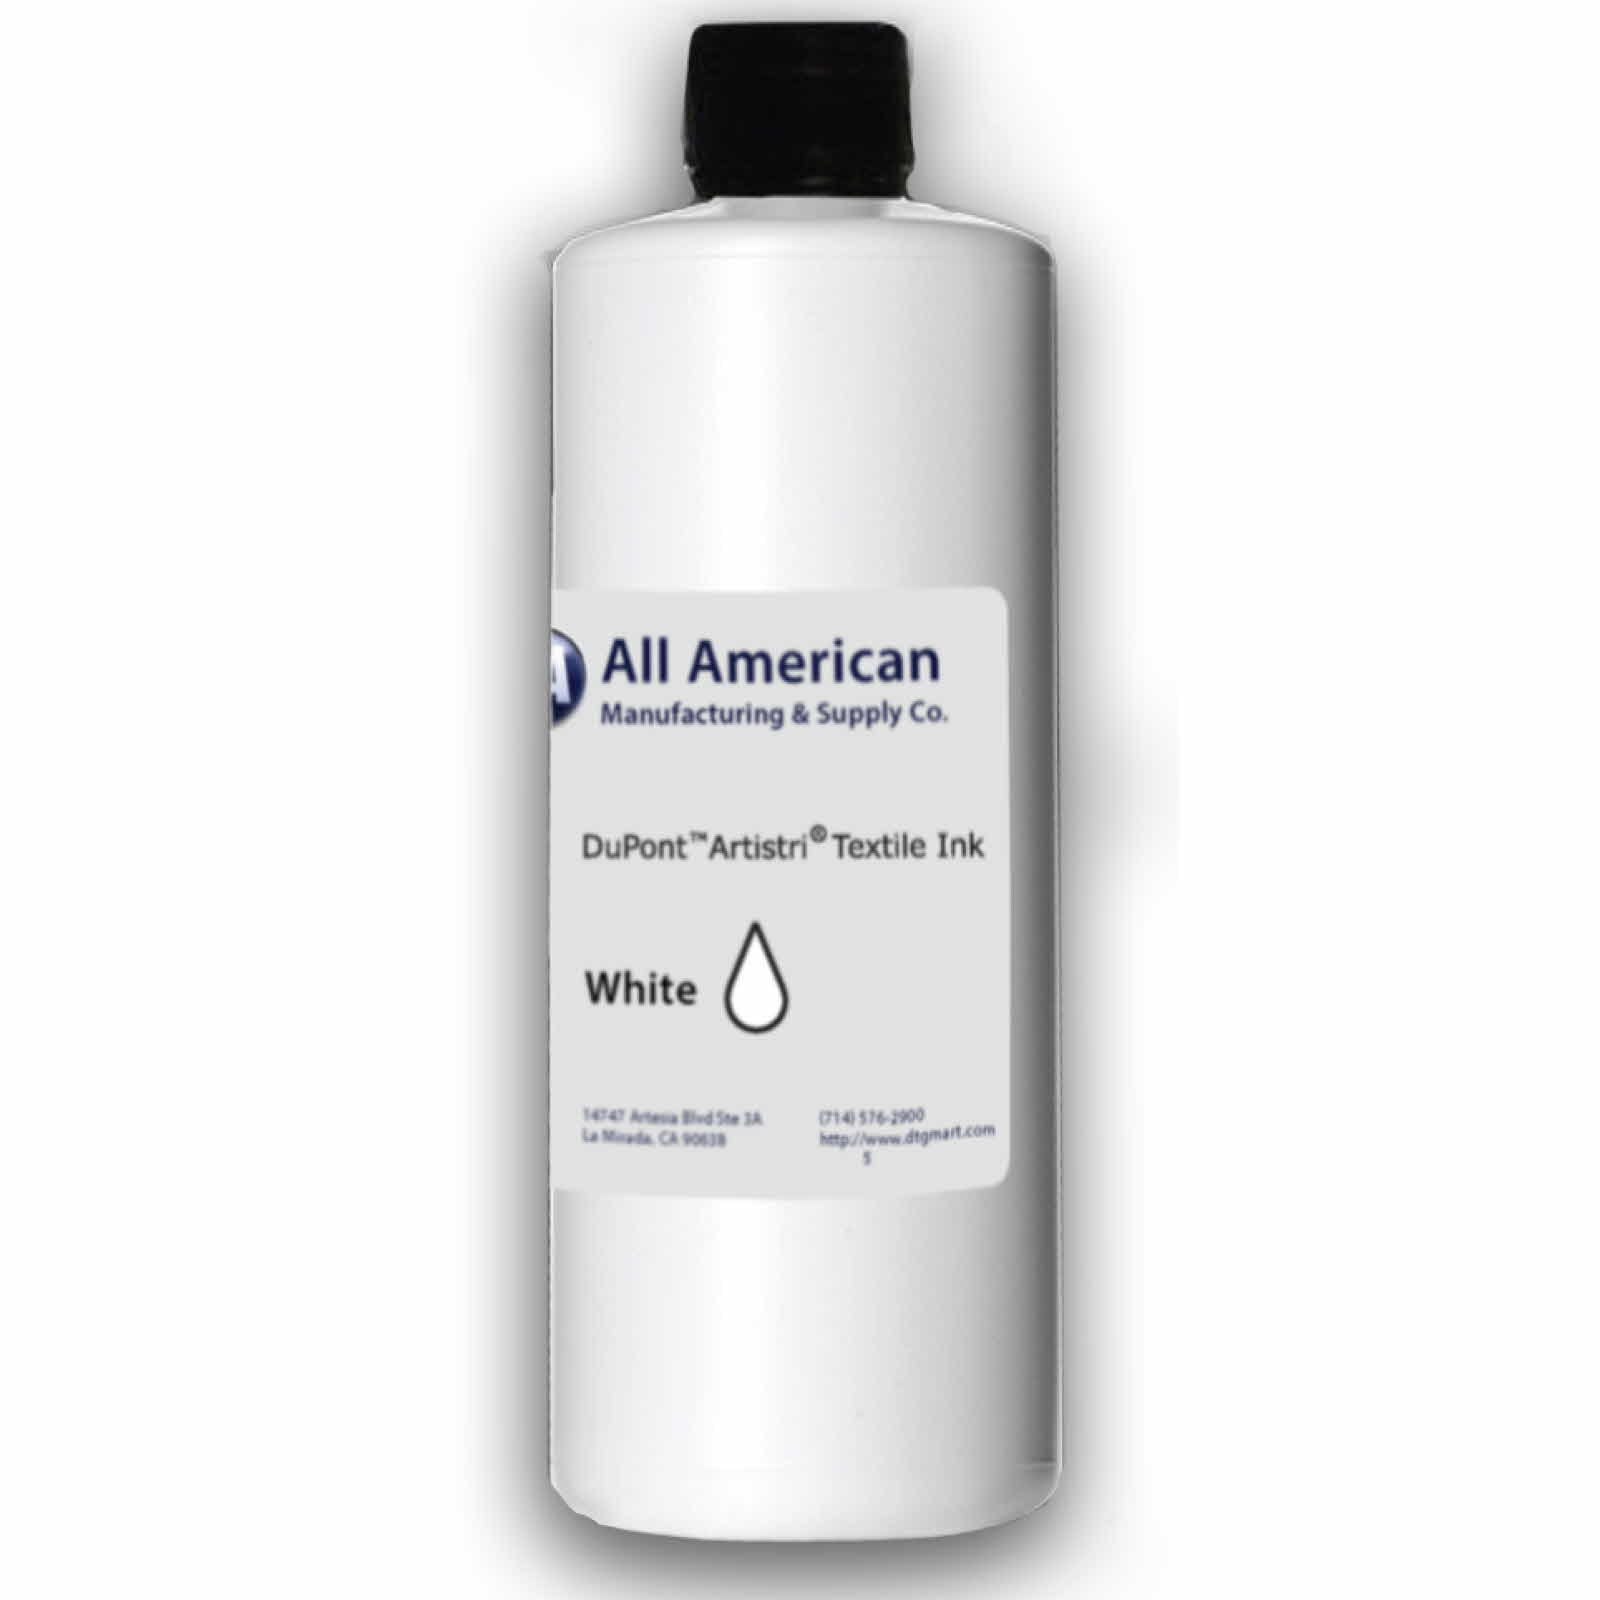 DTG Ink White 1000ml Dupont Textile Ink for Direct to Garment Printers Ink (White) by All American MFG & Supply